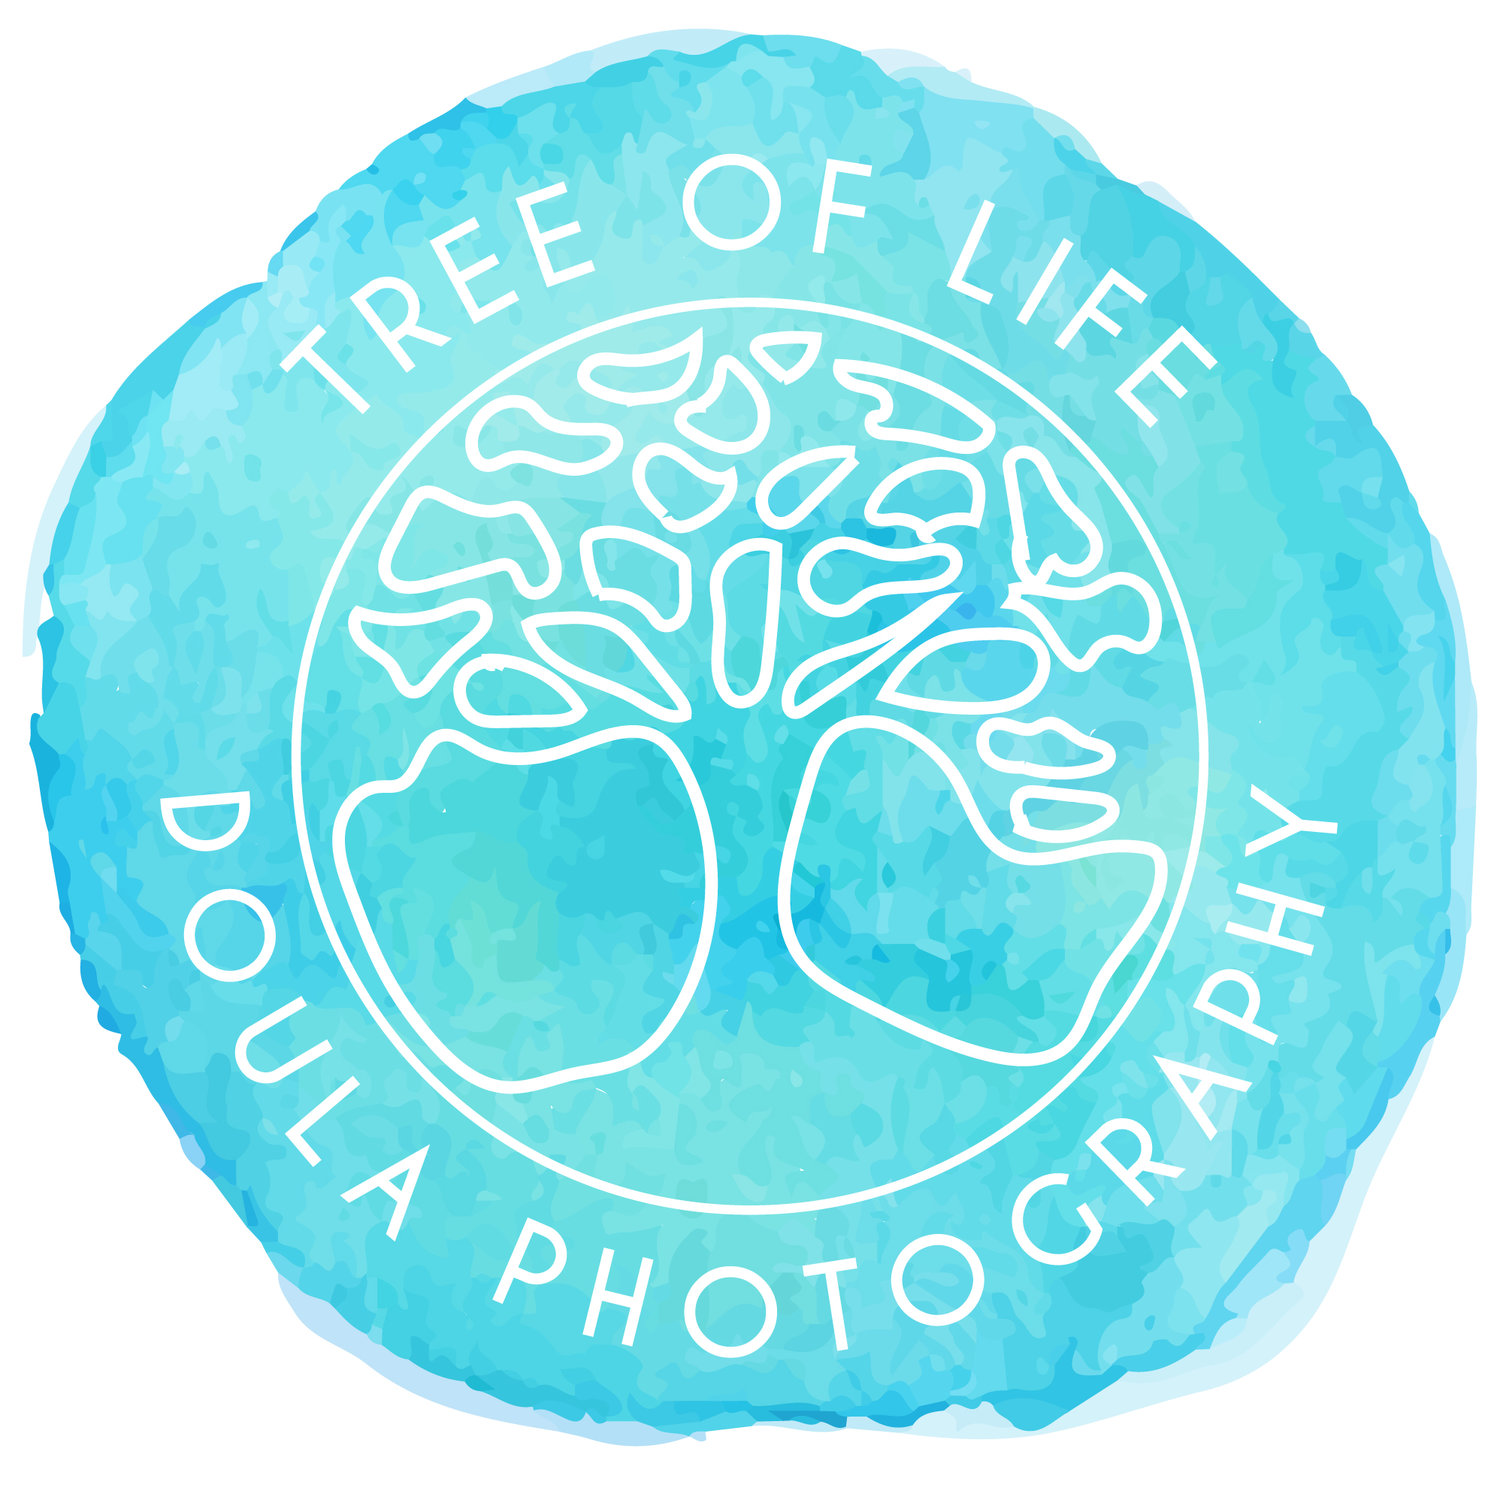 Tree of life doula photography